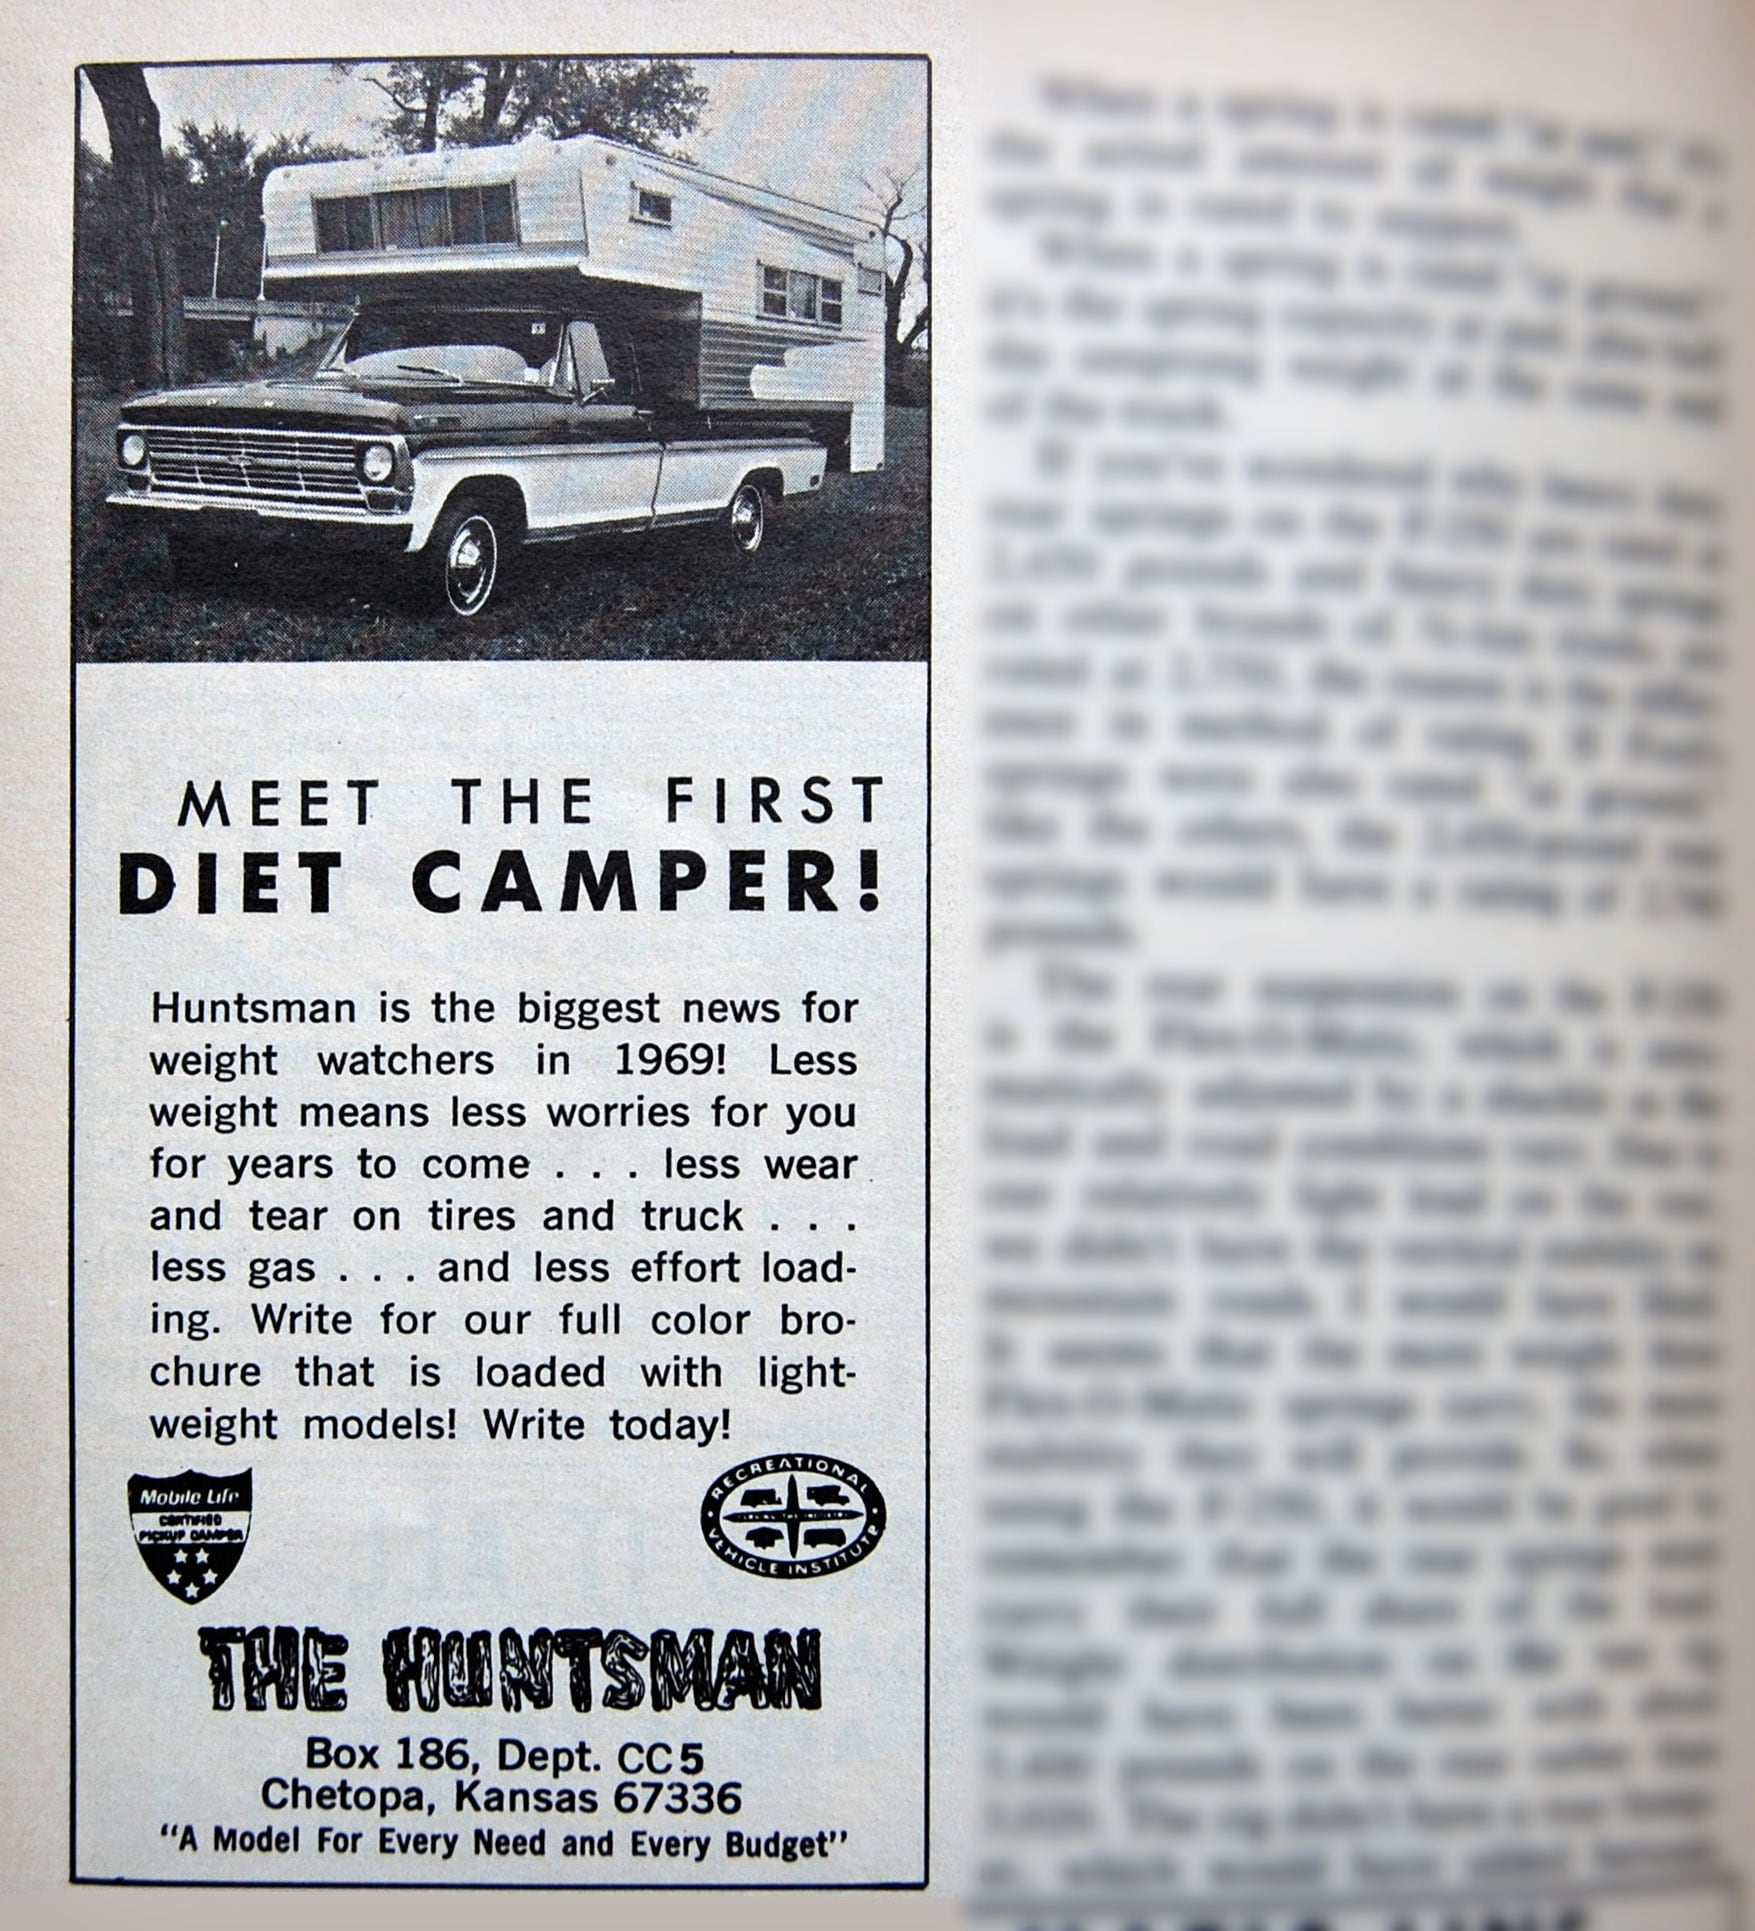 1969 Huntsman Diet Camper